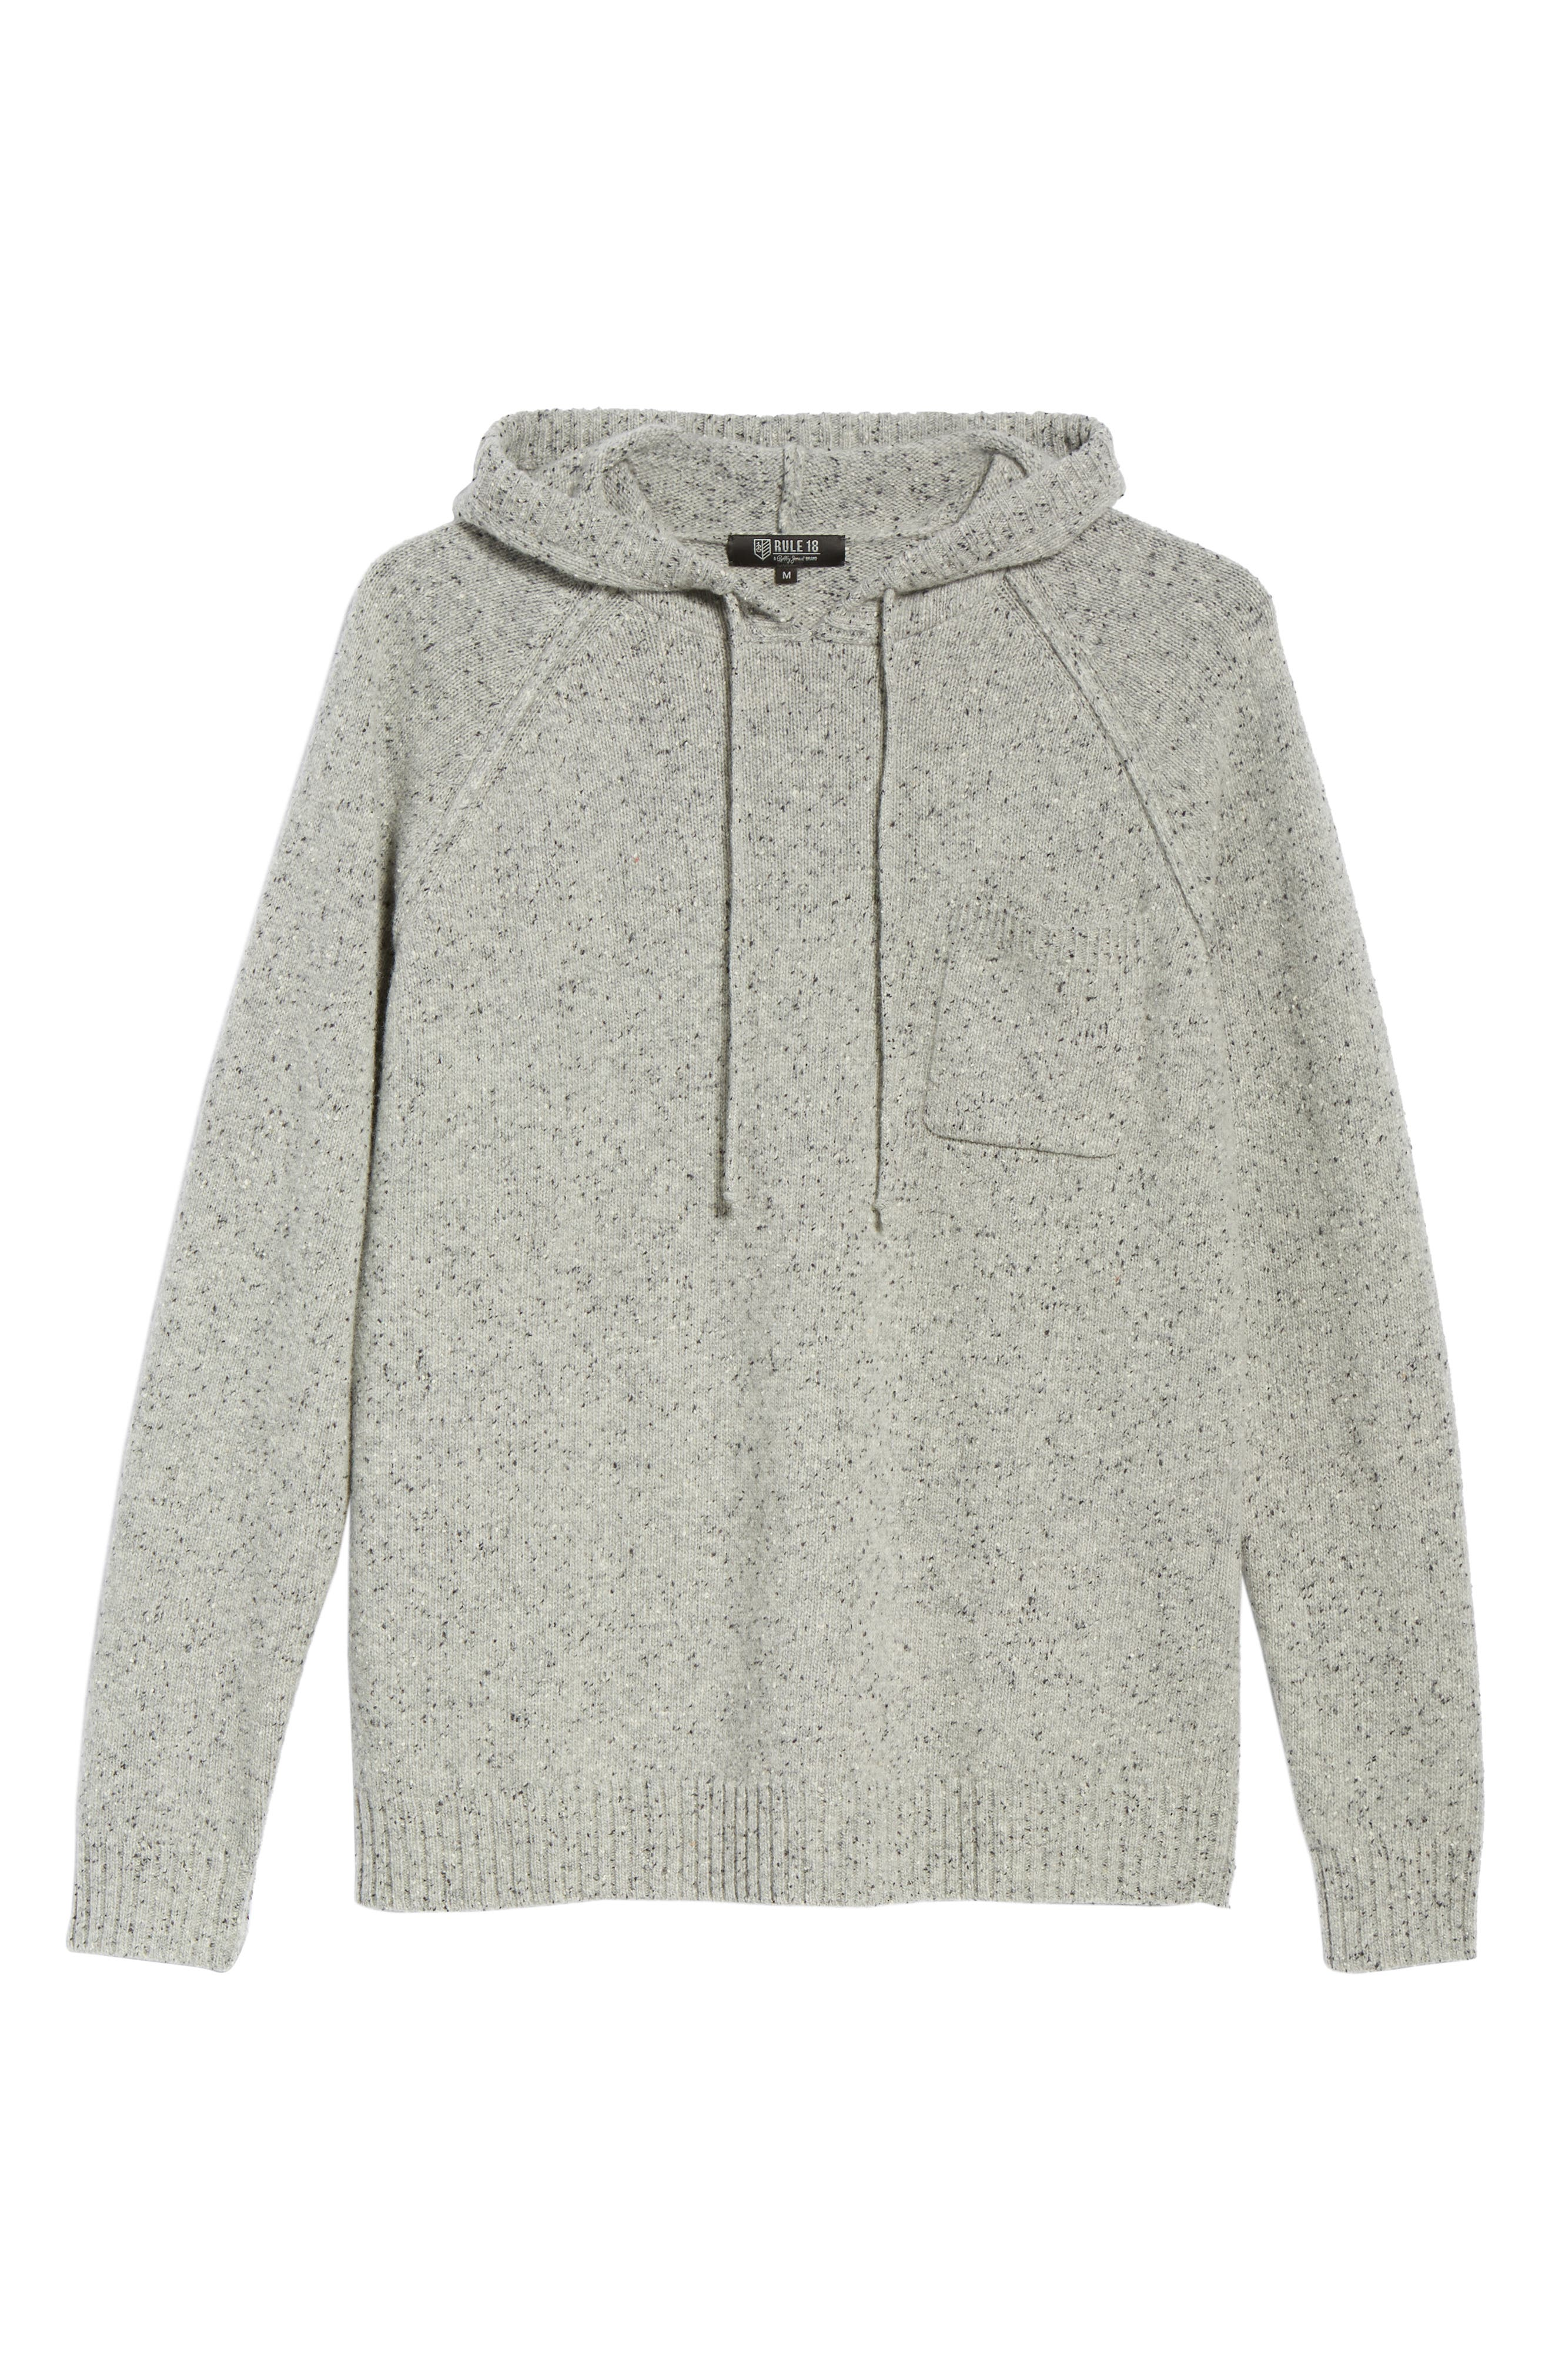 Rule 93 Donegal Regular Fit Hooded Sweater,                             Alternate thumbnail 6, color,                             GREY